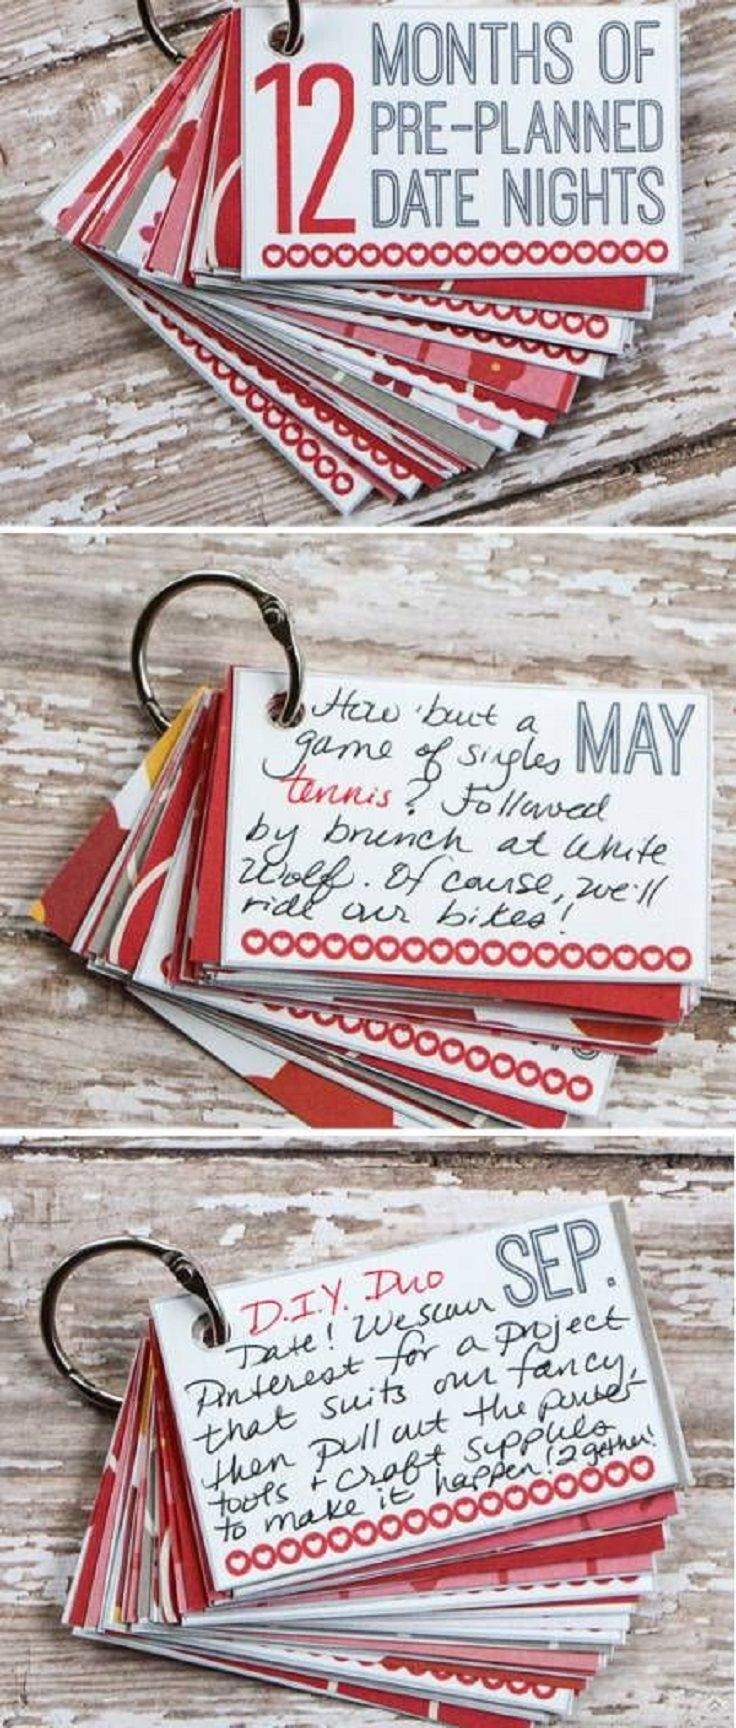 Best diy projects for valentines day do it yourself pinterest best diy projects for valentines day solutioingenieria Choice Image